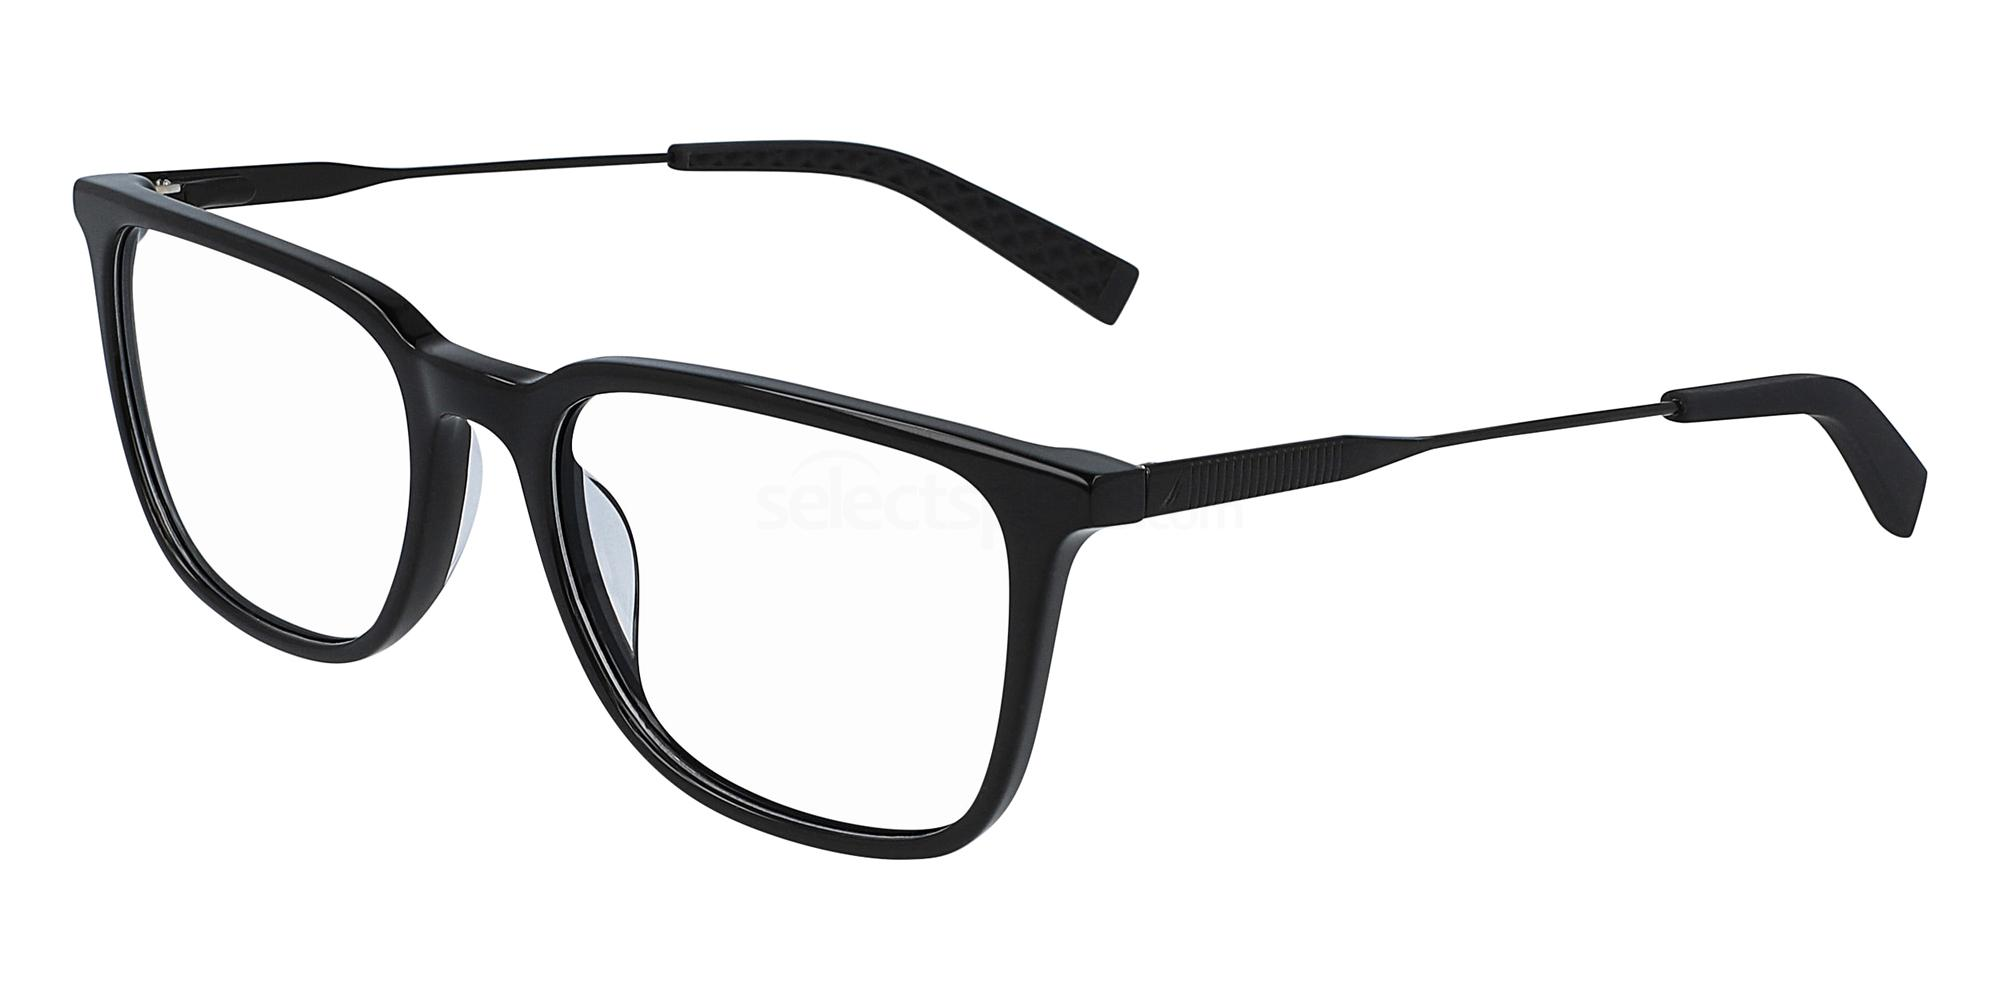 001 N8149 Glasses, Nautica